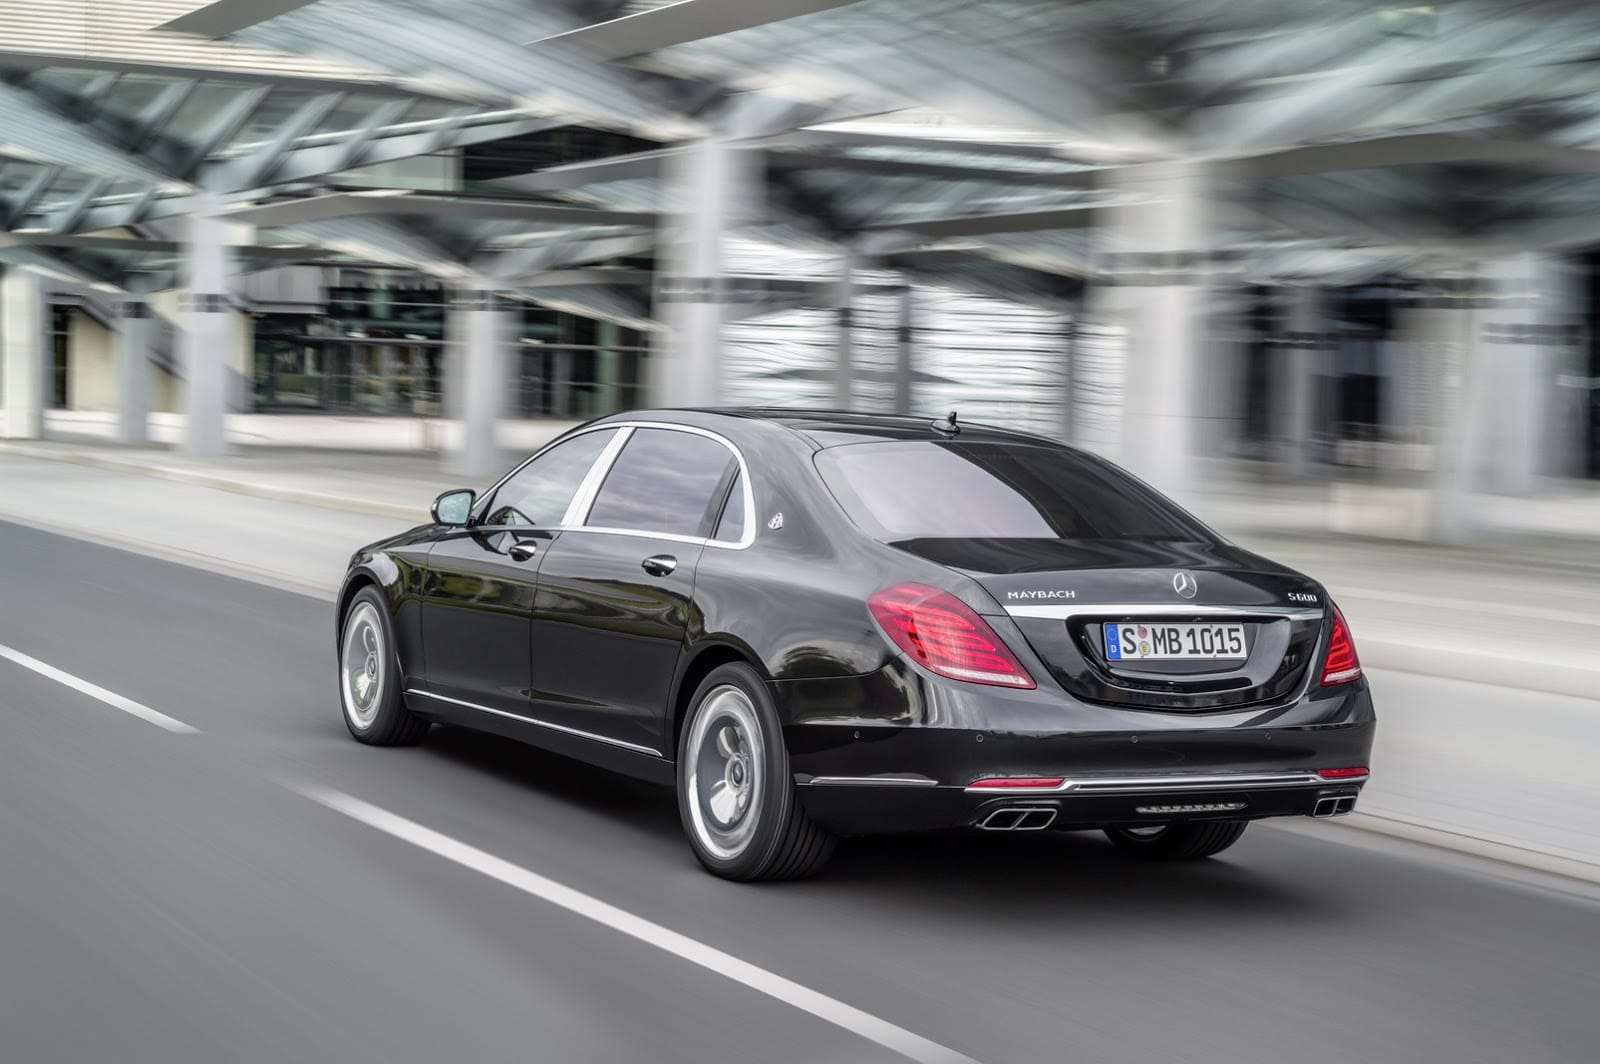 Mercedes-Maybach : la Classe S du riche